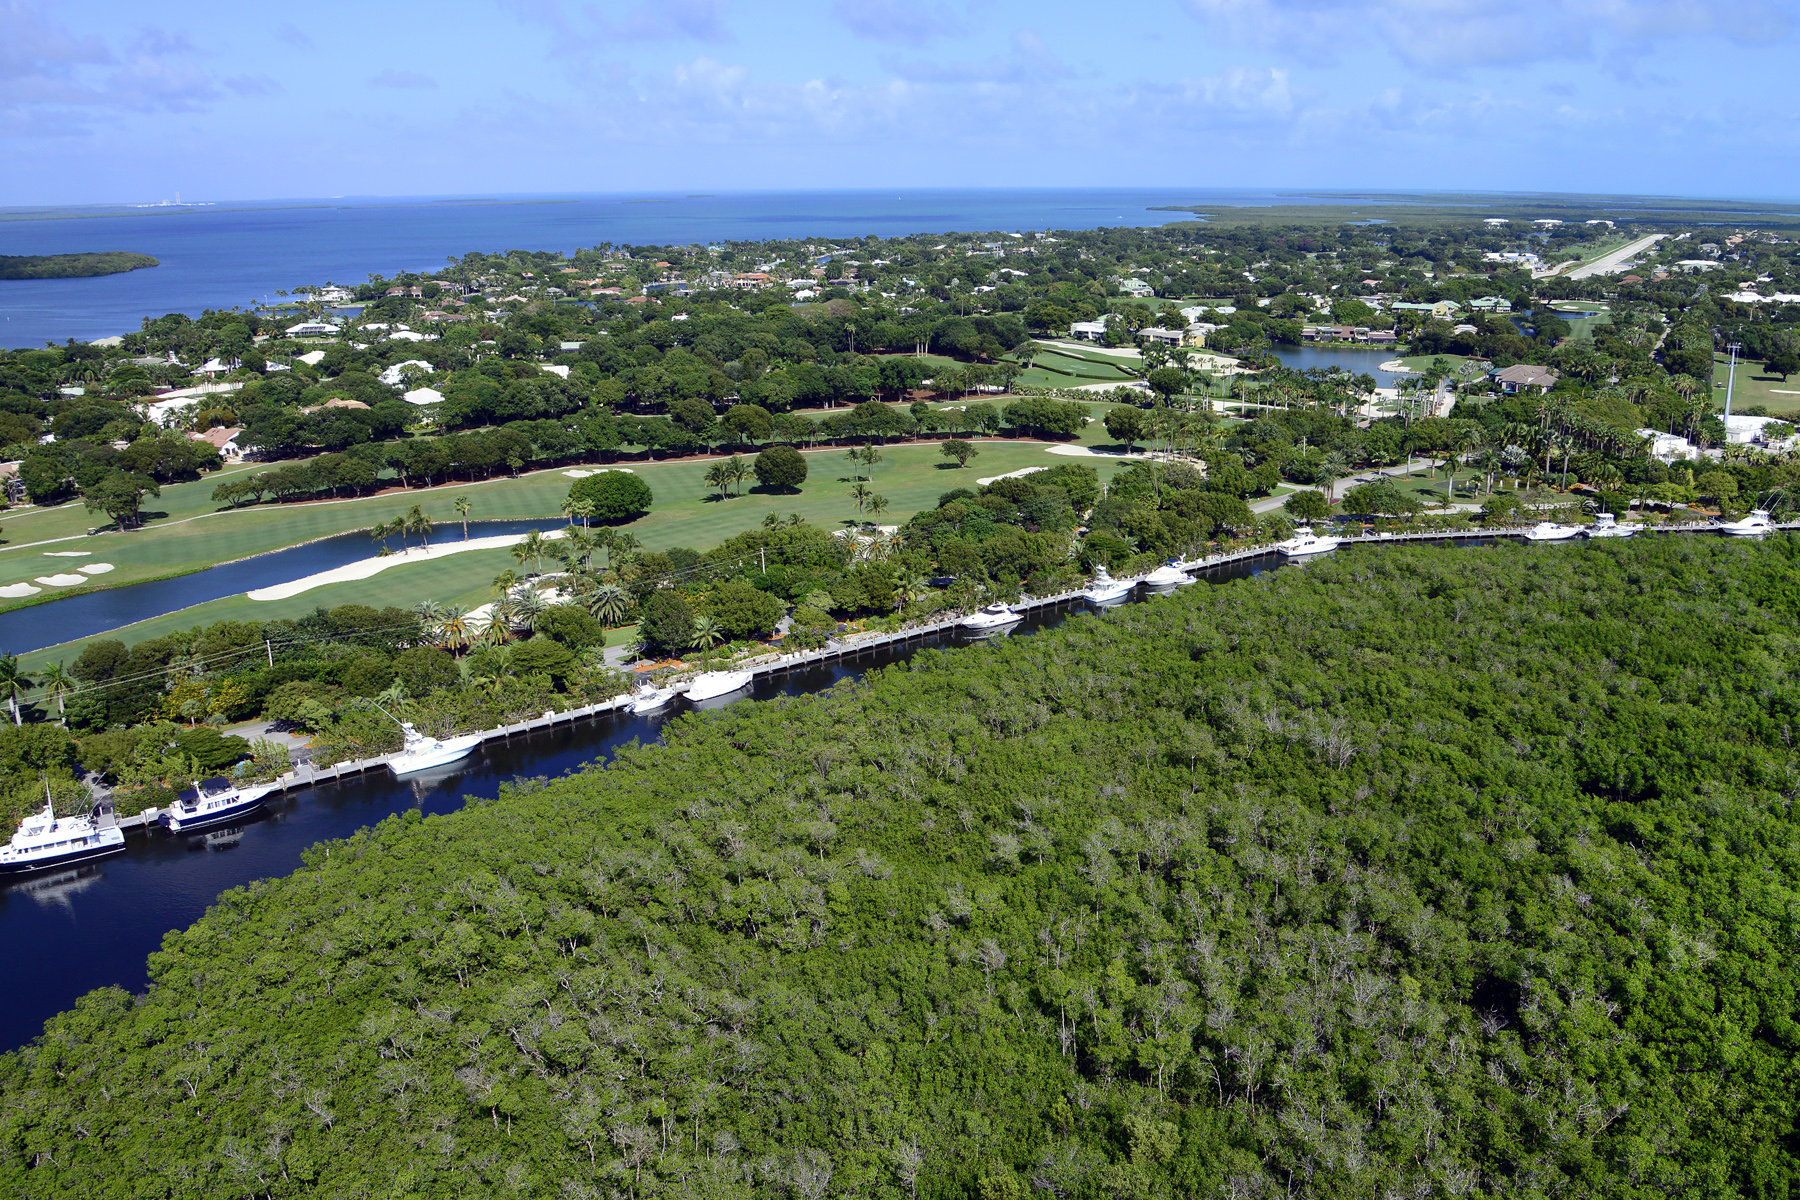 Additional photo for property listing at Prime Dockage Location at Ocean Reef 11 Gate House Road, Dock AS-11 Key Largo, Florida 33037 Estados Unidos